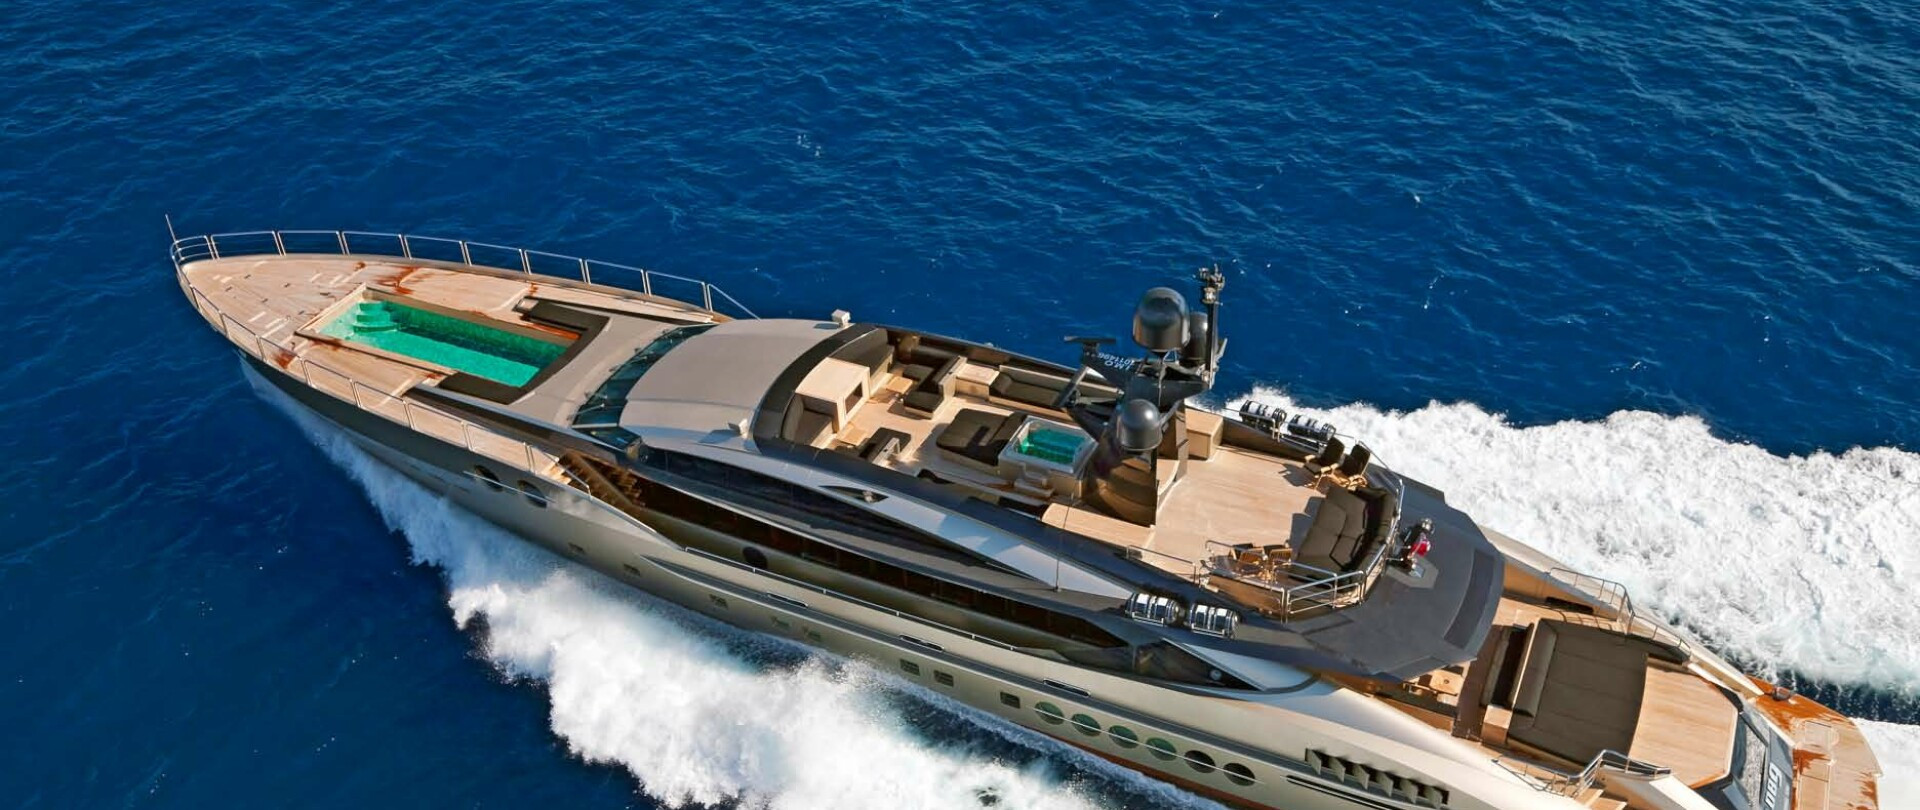 DB9 Yacht for Charter photo 18